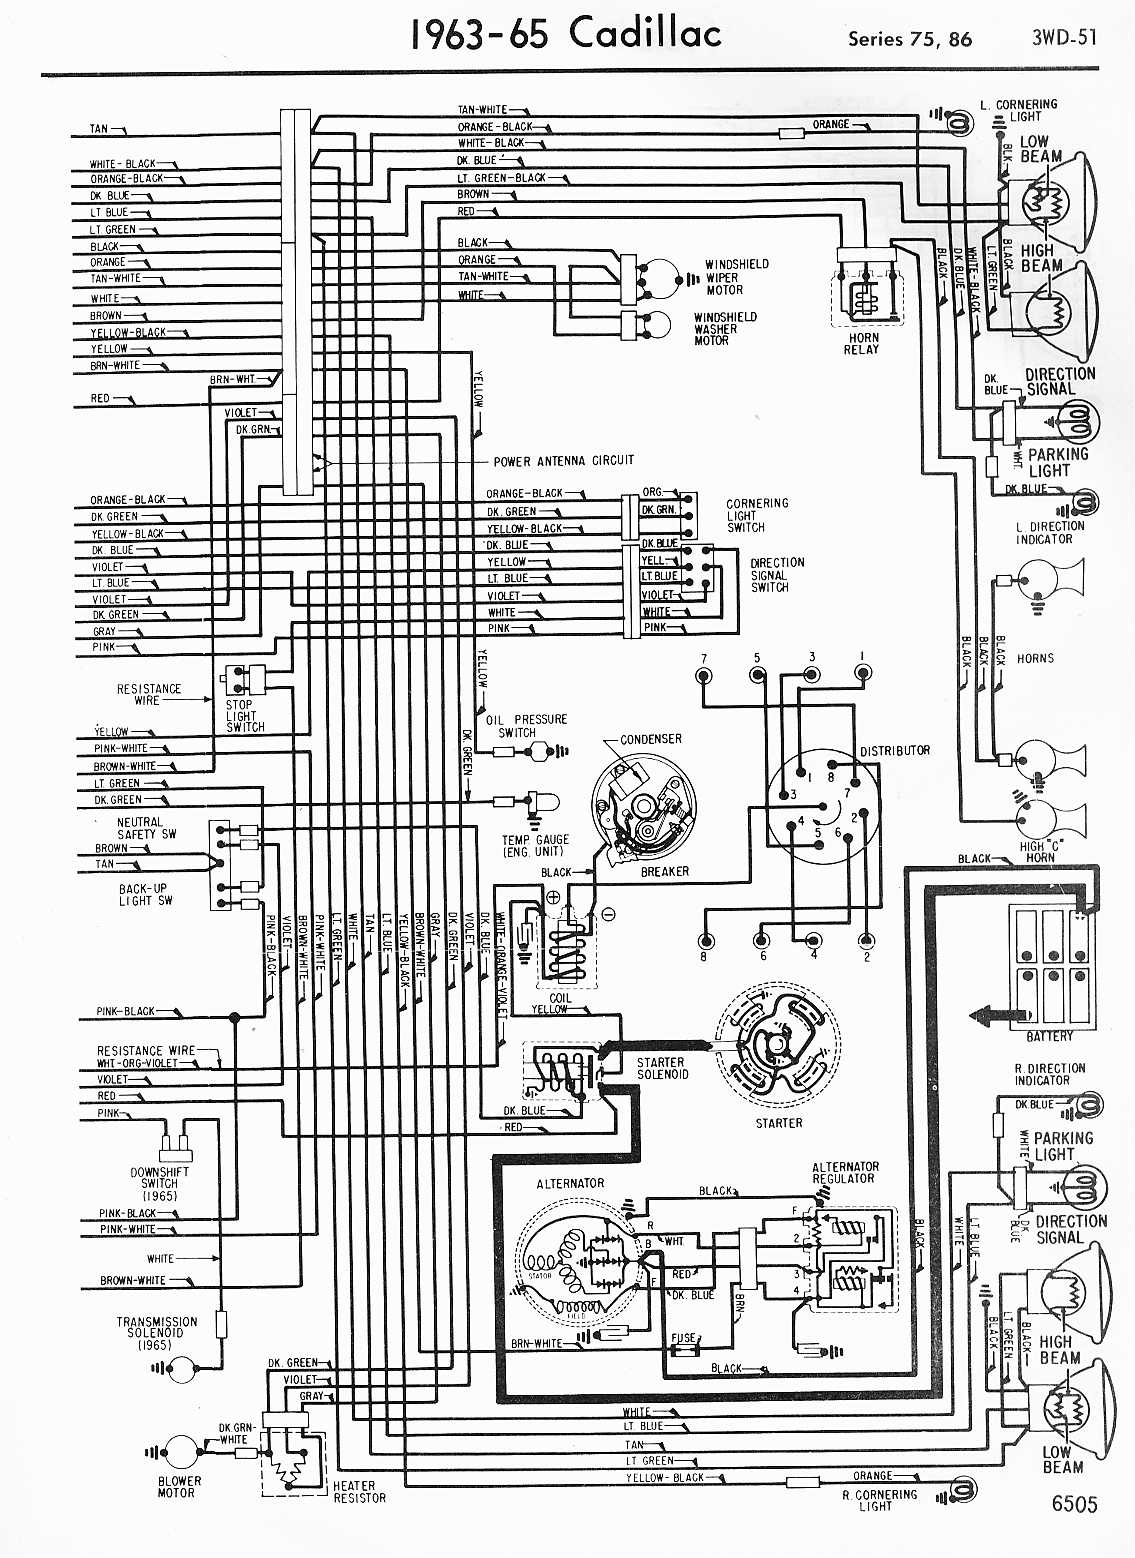 cadillac wiring diagrams 1957 1965 wiring diagram cadillac 1955 1965 series 75 right · more buick ads · buick wiring diagrams